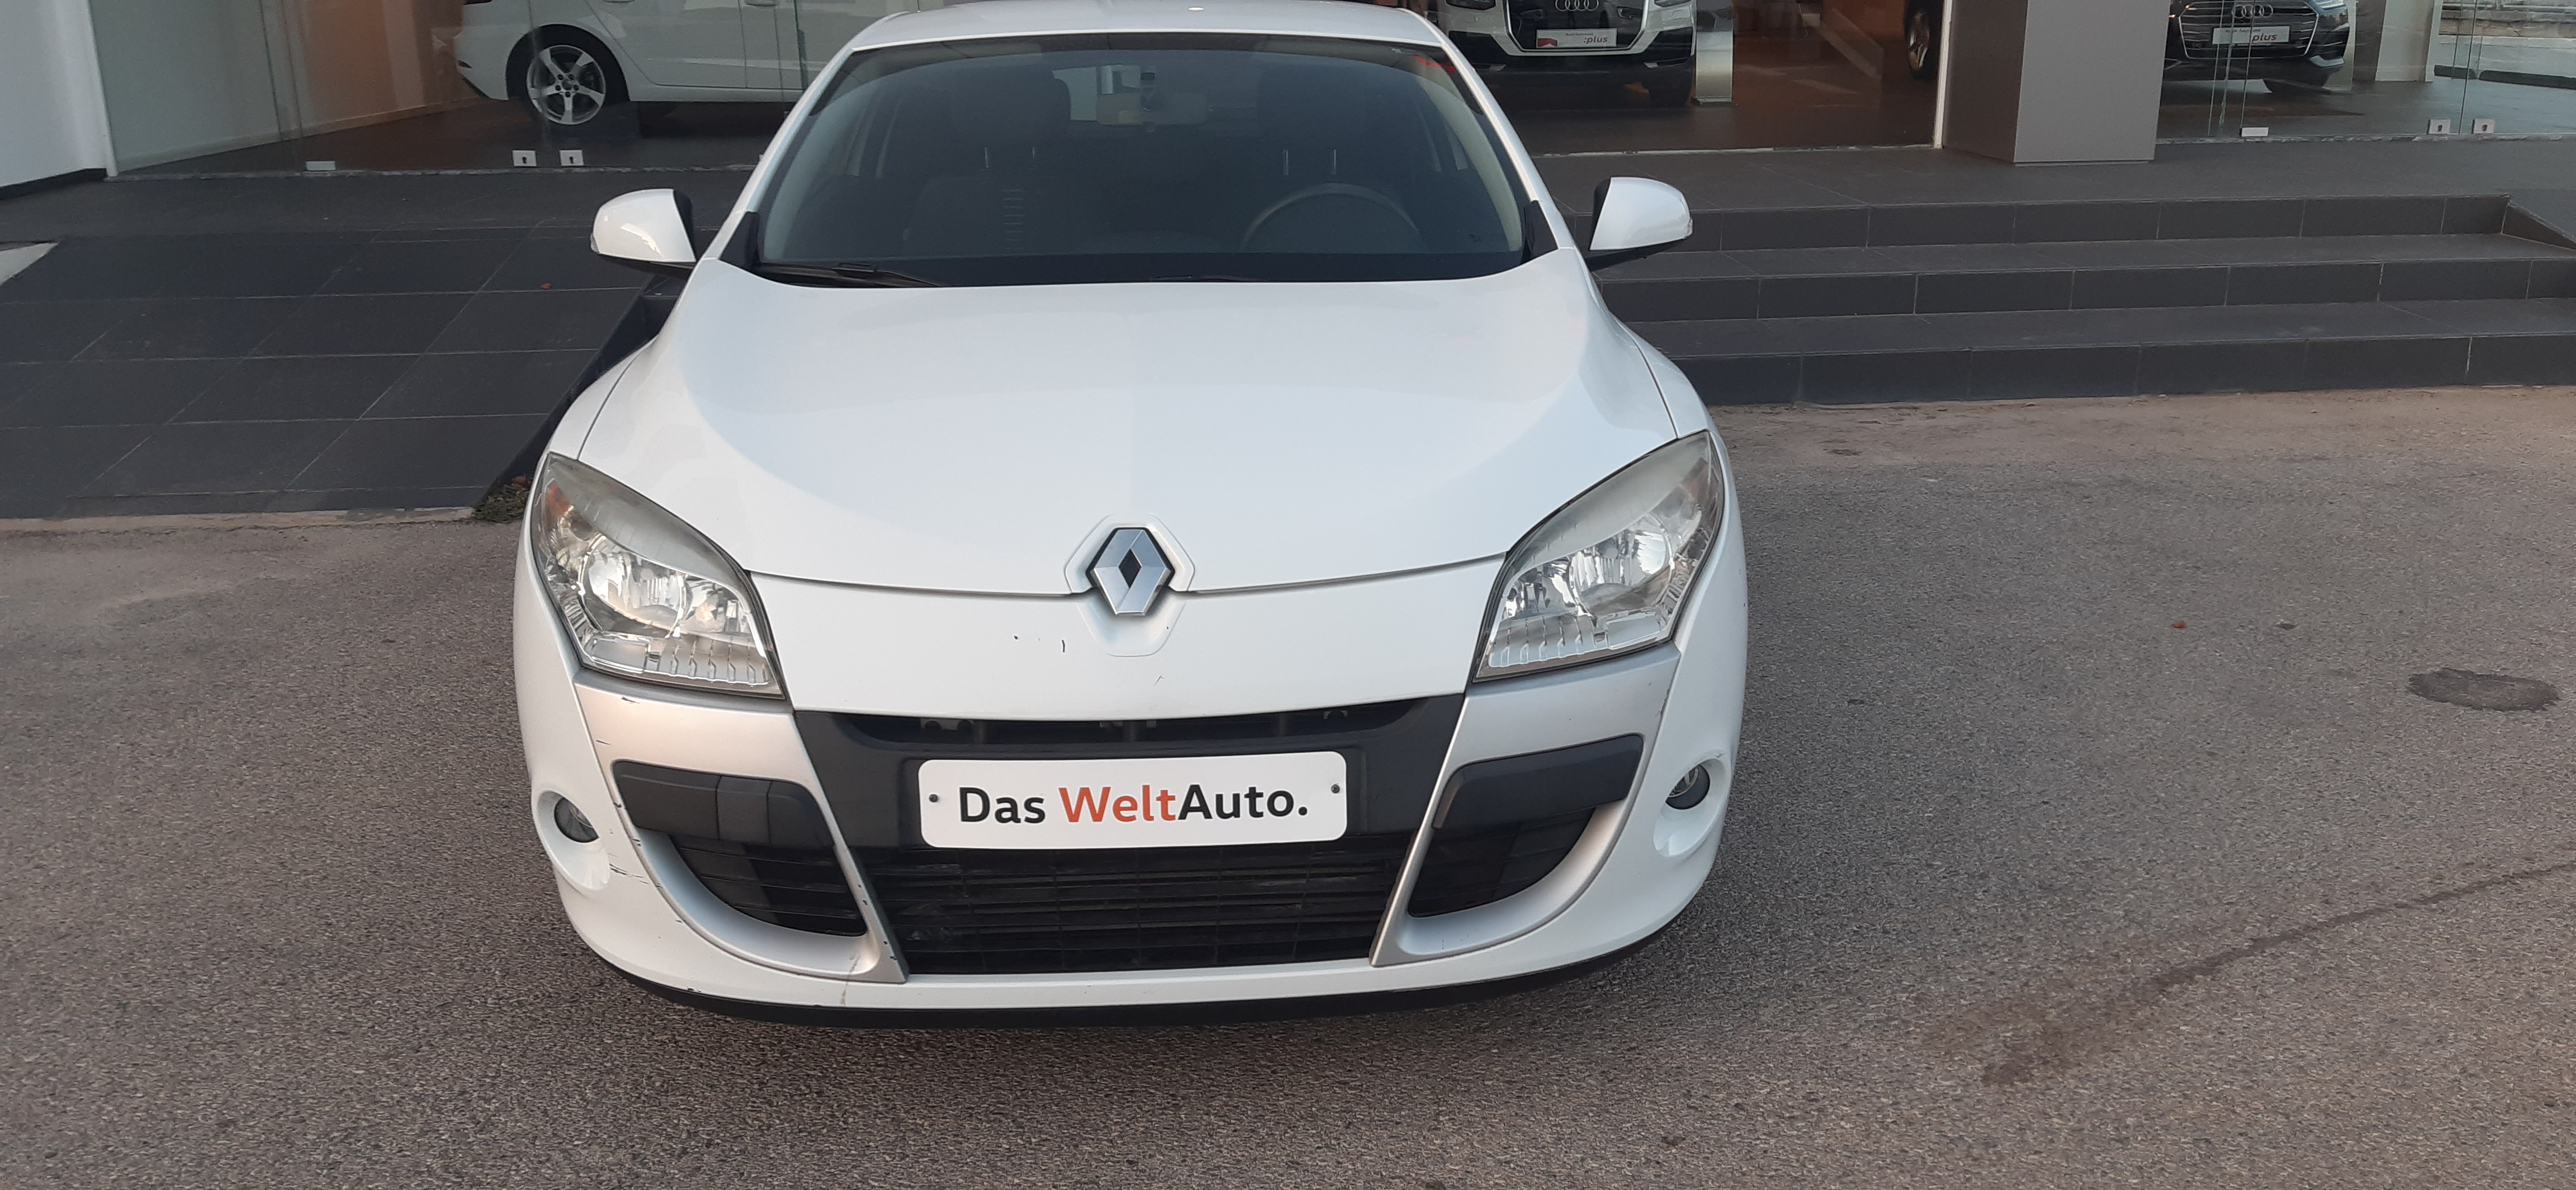 RENAULT MEGANE COUPE TCE 130HP